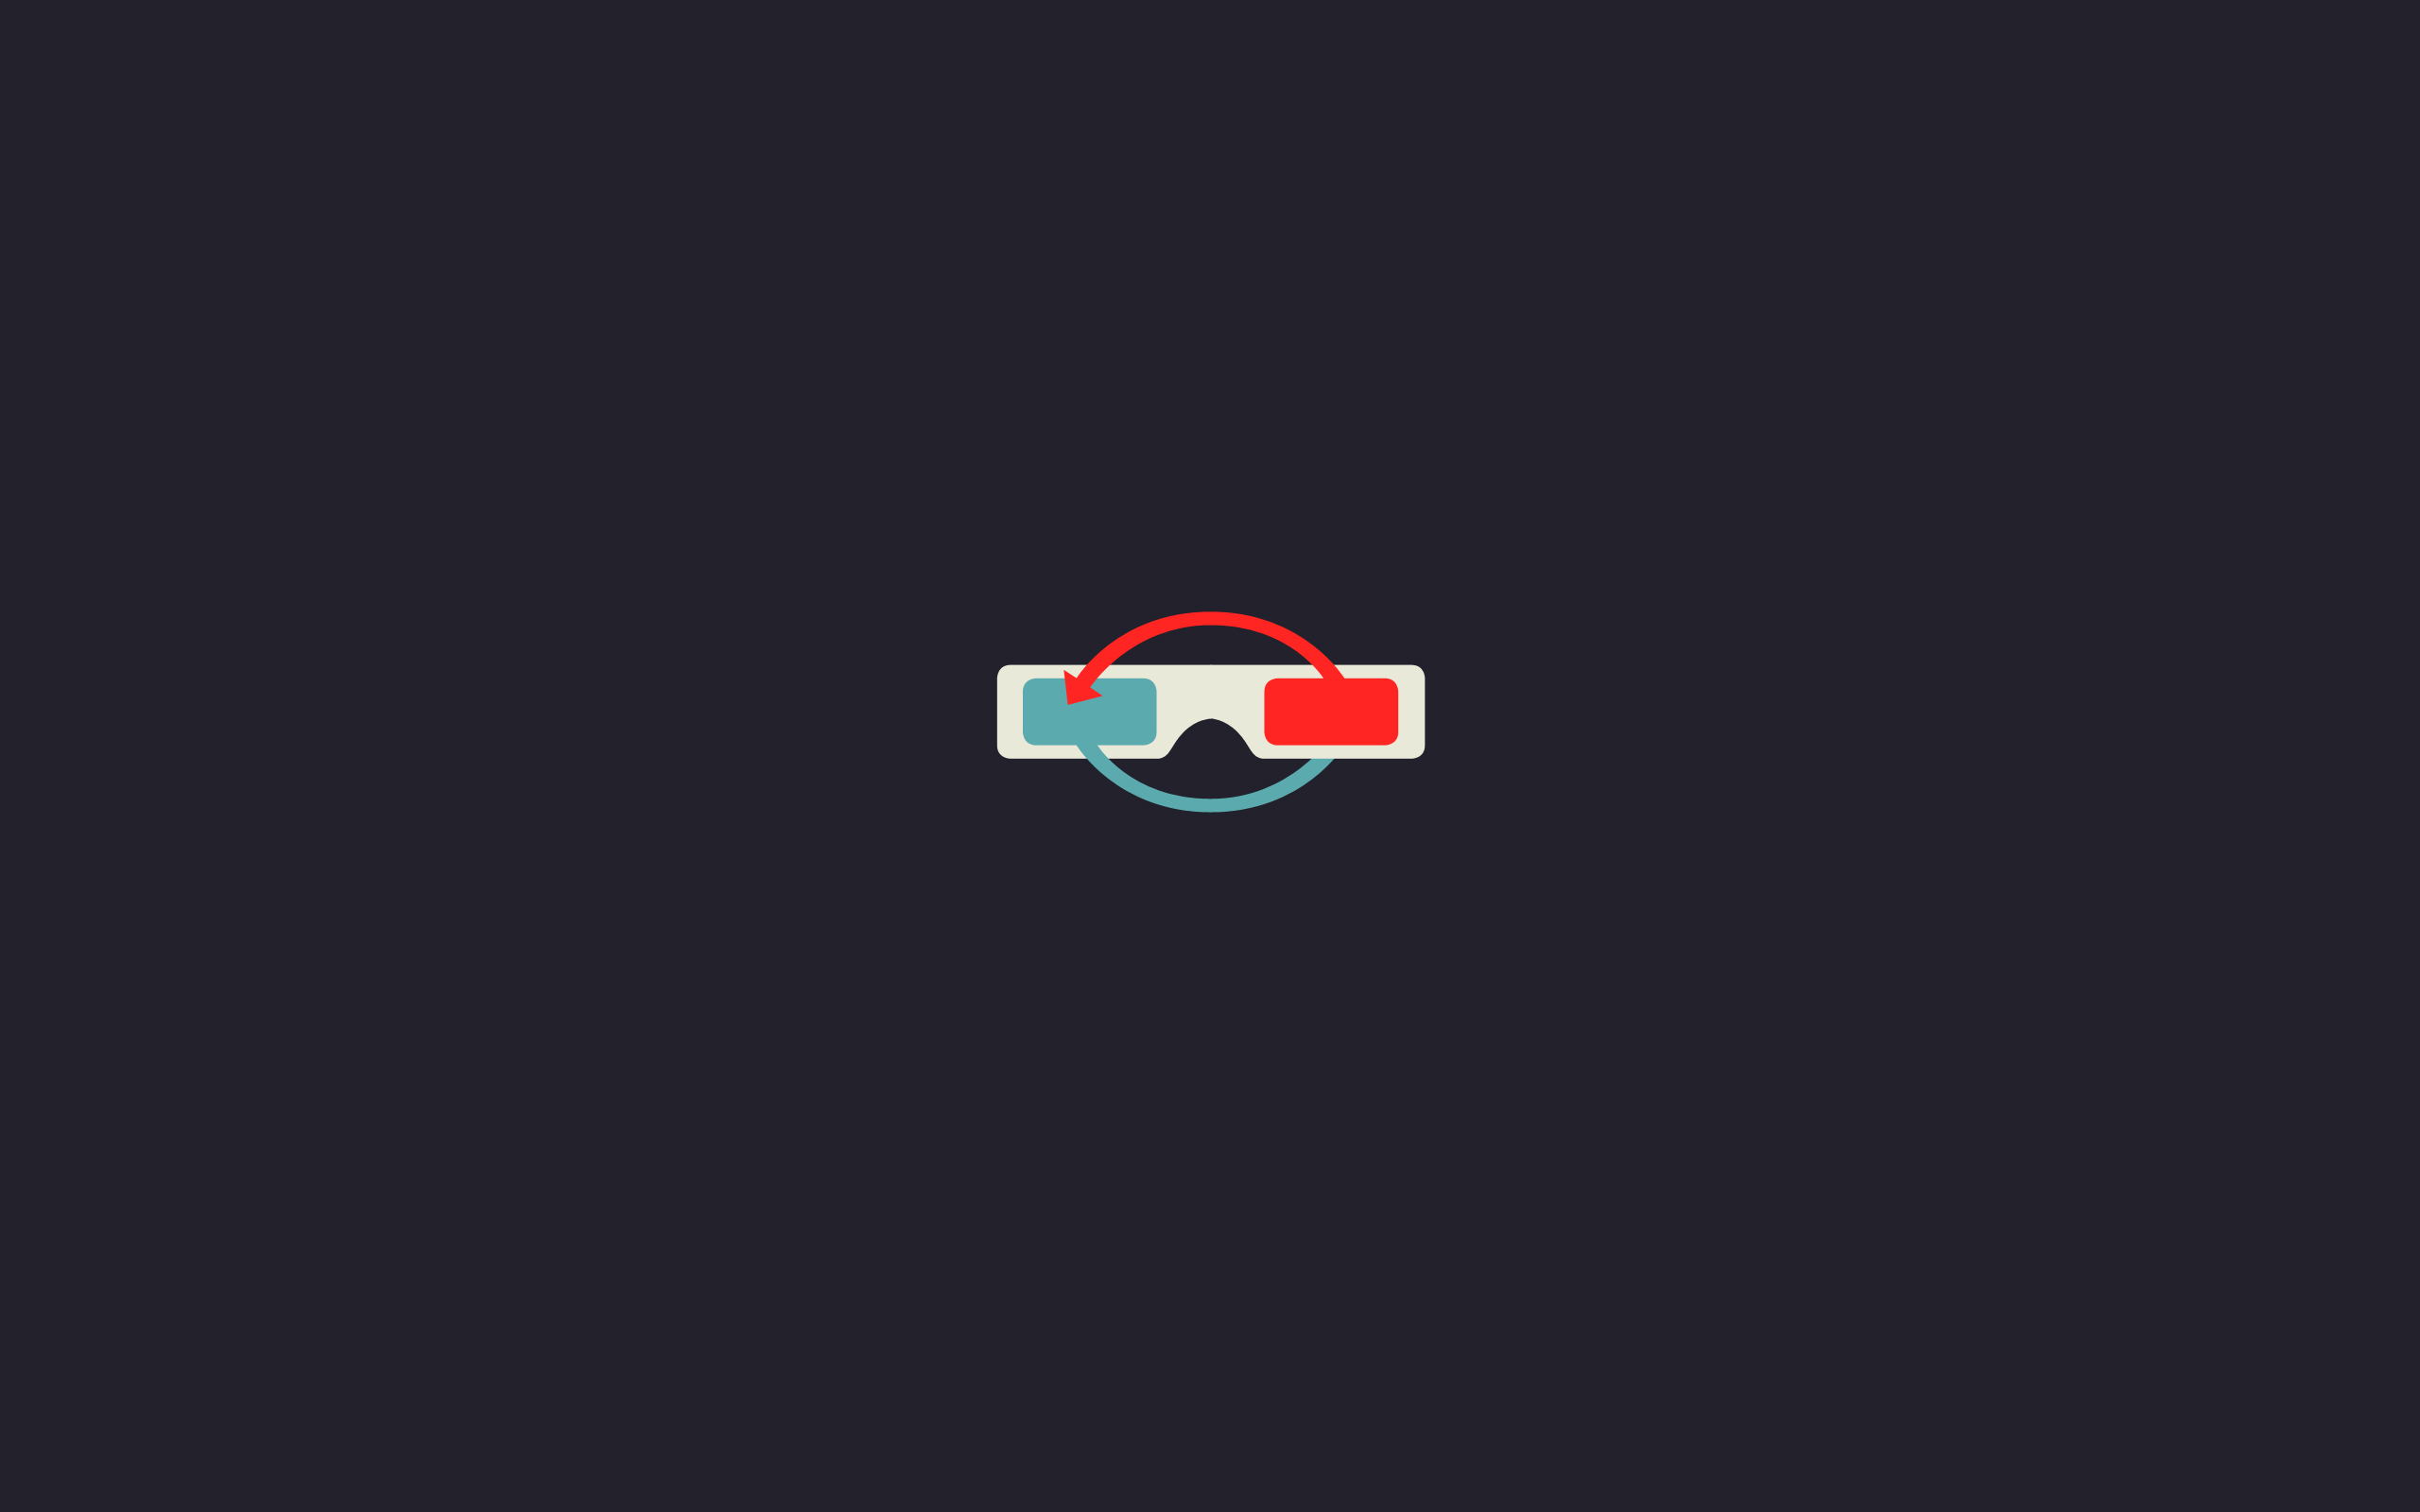 150 Minimalist Hd Wallpapers For Your Mobile Devices